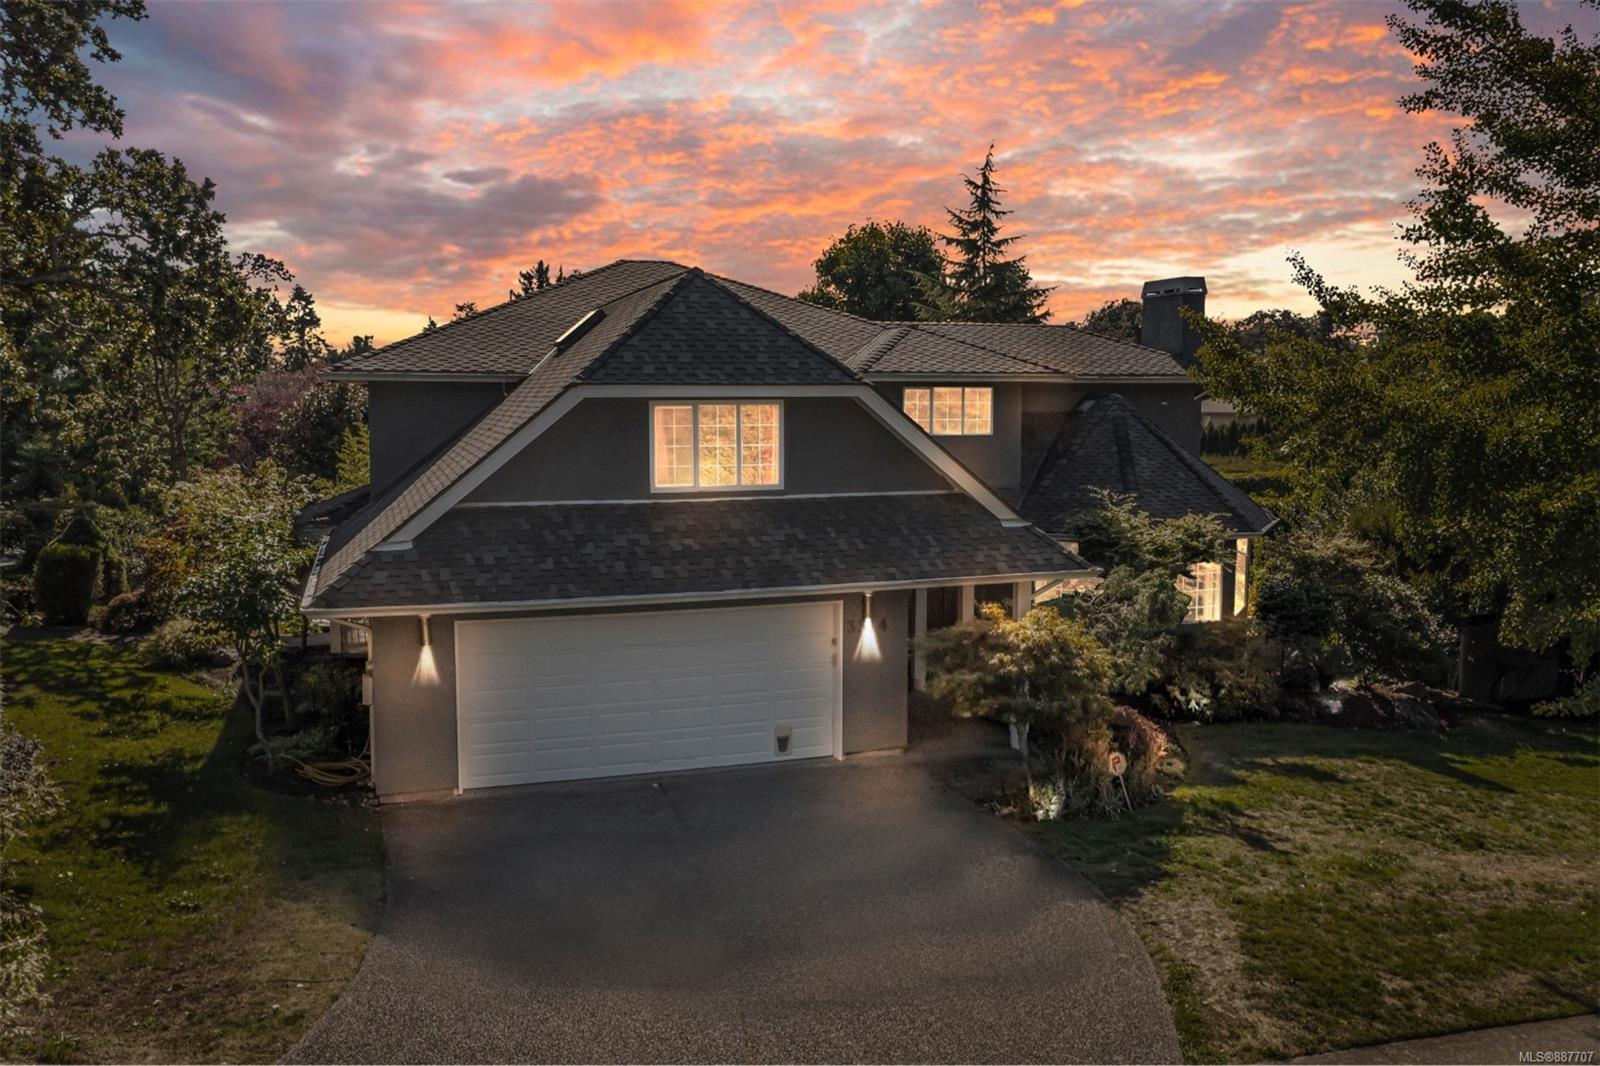 THREE-LEVELS and nearly 5,000 SFT FINISHED INTERIOR. Located in one of Oak Bay's most sought-after neighborhoods, UNIVERSITY WOODS! This 5 bed/5 bath executive home situated on 12,000+ sq/ft corner lot of mature shrubs, specimen trees & lush lawns, all irrigated by a 6-zone u/g sprinkler system. Main level offers a bright inviting kitchen with Eating Area, Family, Living, Dining, Office, and Laundry rooms. Enjoy a sizable SW-facing deck. Upper level has three good size bedrooms in addition to the spacious master suite. Lower level walk-out has a large additional living room, 1 bed plus den with 4 piece bathroom for in-laws. Big bonus above the garage offers a self-contained guest suite! Well maintained w/ quality improvements including Curupay solid wood flooring, heat pump, electric wall heaters & heated tile flooring. Double garage & crawlspace storage.Walking distance to St. Michael's University School, UVic, and Camosun College.